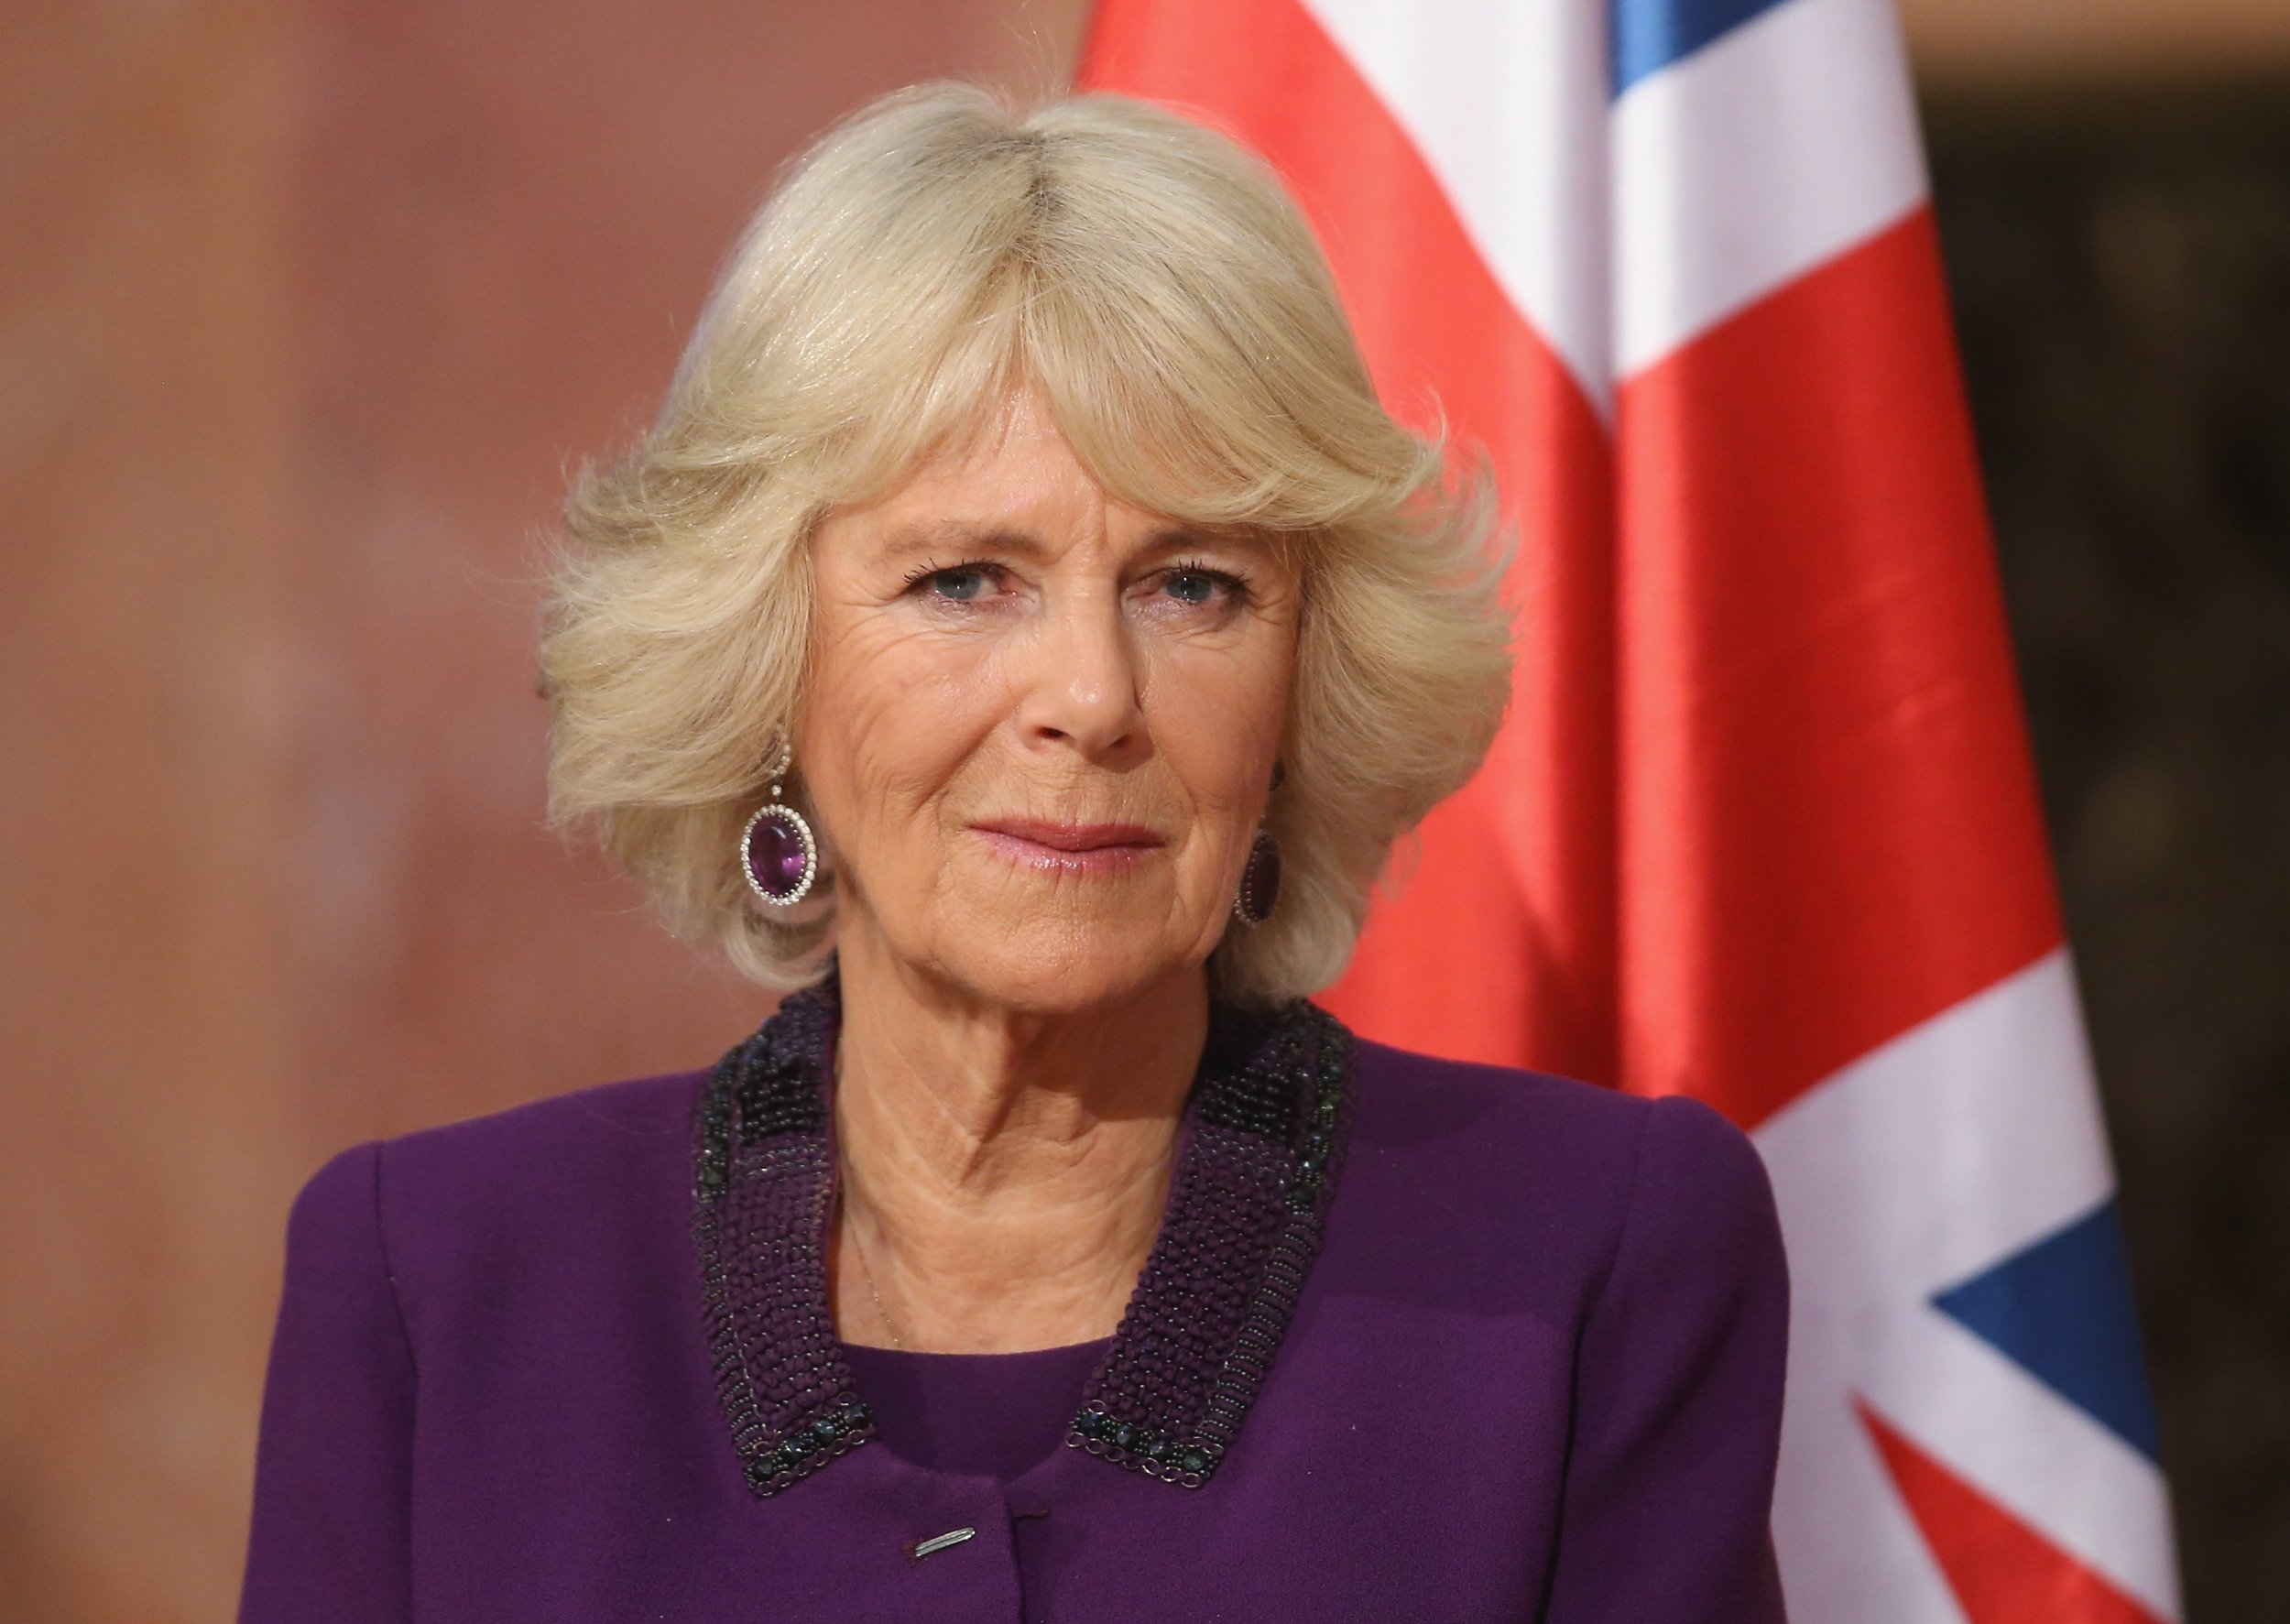 Camilla Duchess Of Cornwall Domestic Abuse Is A Hidden. Beautiful Men Wedding Wedding Rings. Ultimate Engagement Rings. Single Prong Rings. Diamond Simulant Wedding Rings. Blue Sapphire Wedding Rings. .92 Carat Engagement Rings. Saltwater Pearl Wedding Rings. Fire Department Rings